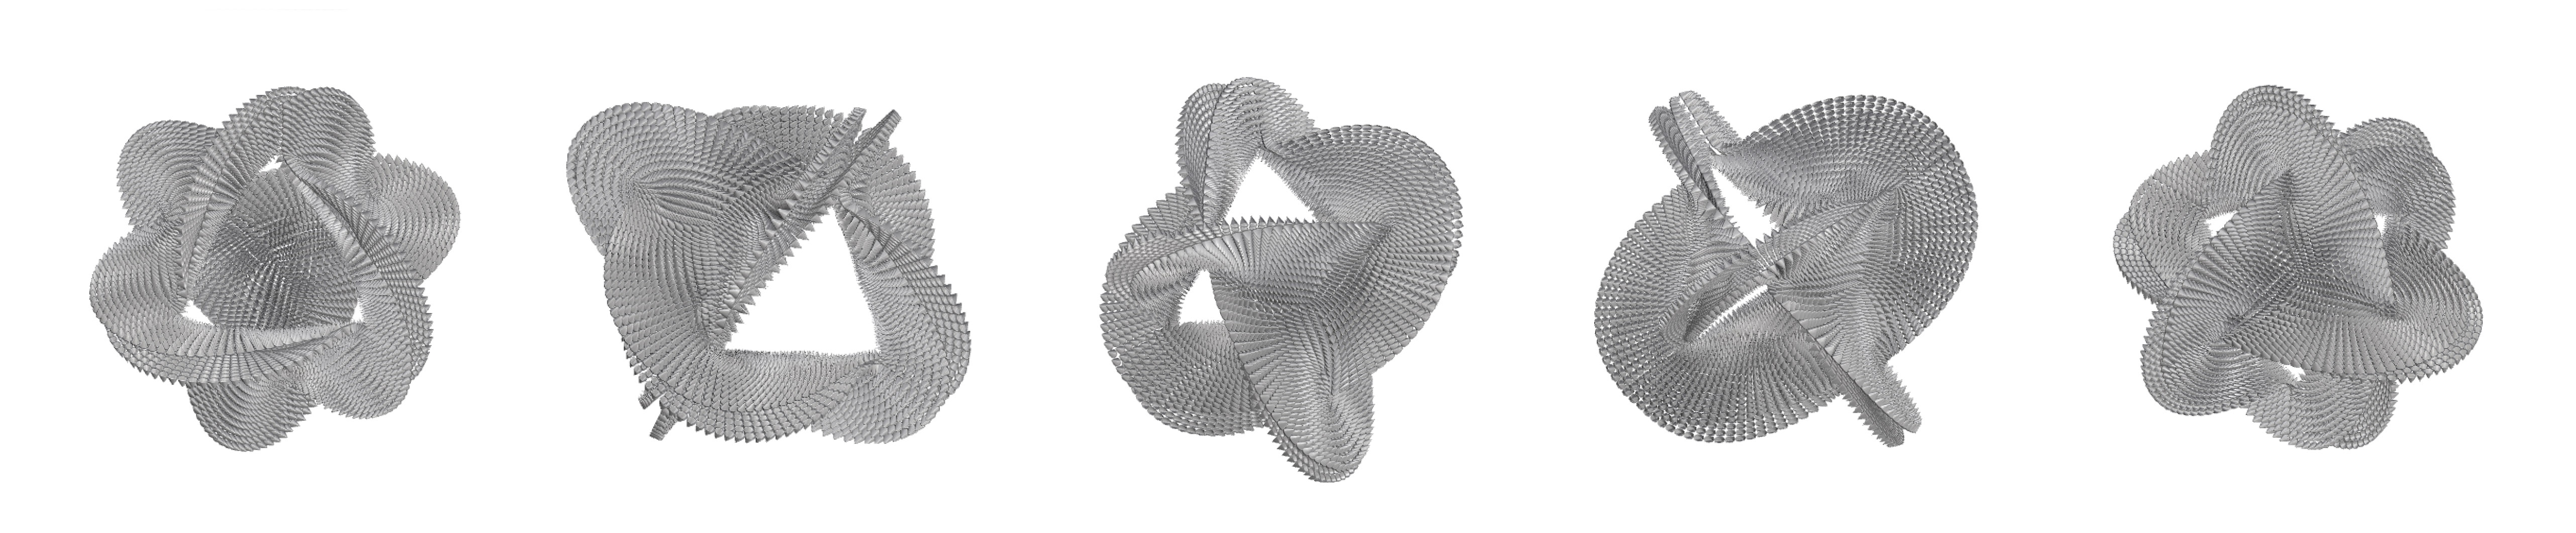 Borromean_Mobius_Surface_Manon_Vajou